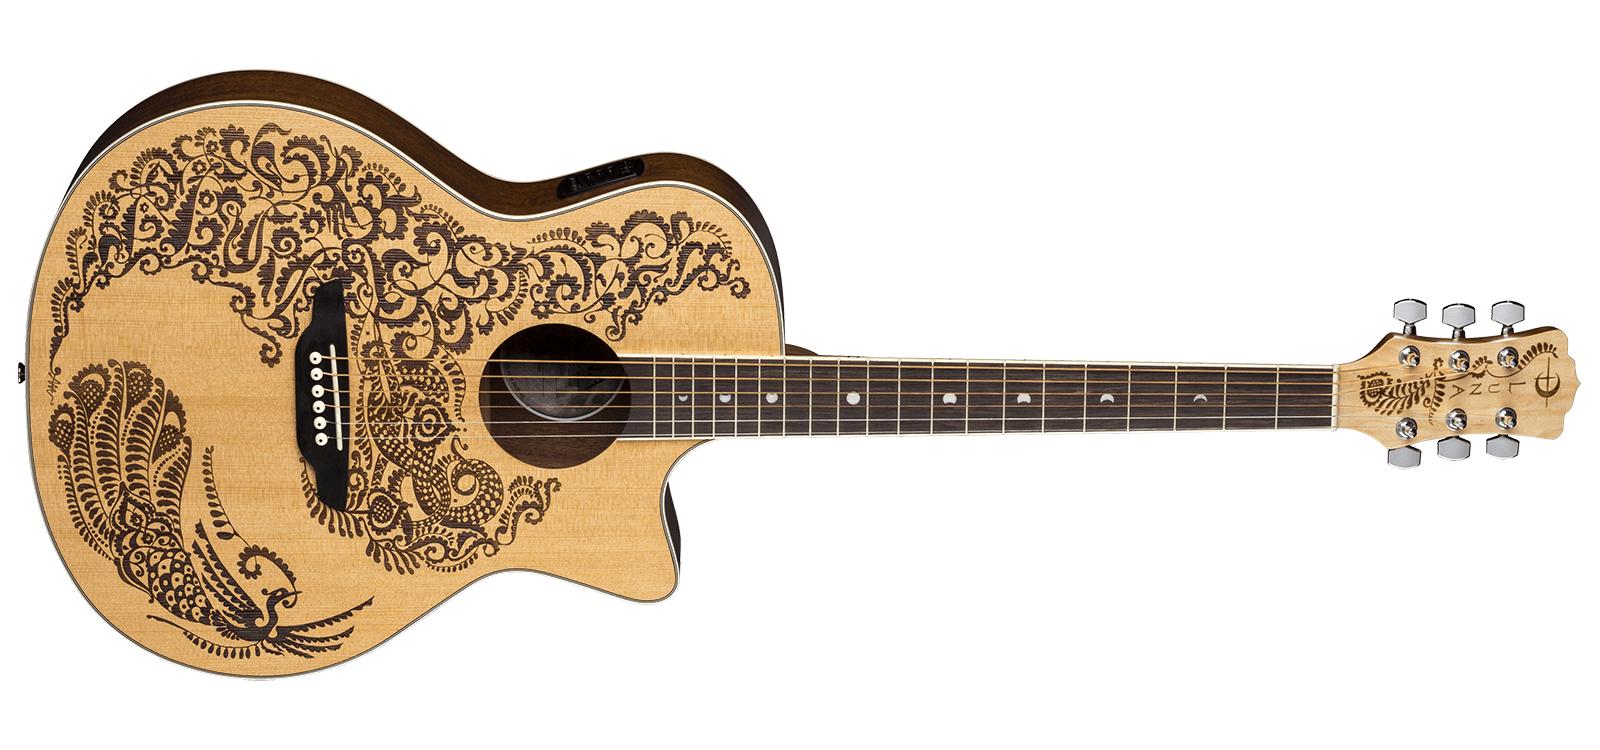 Luna Guitars product Image